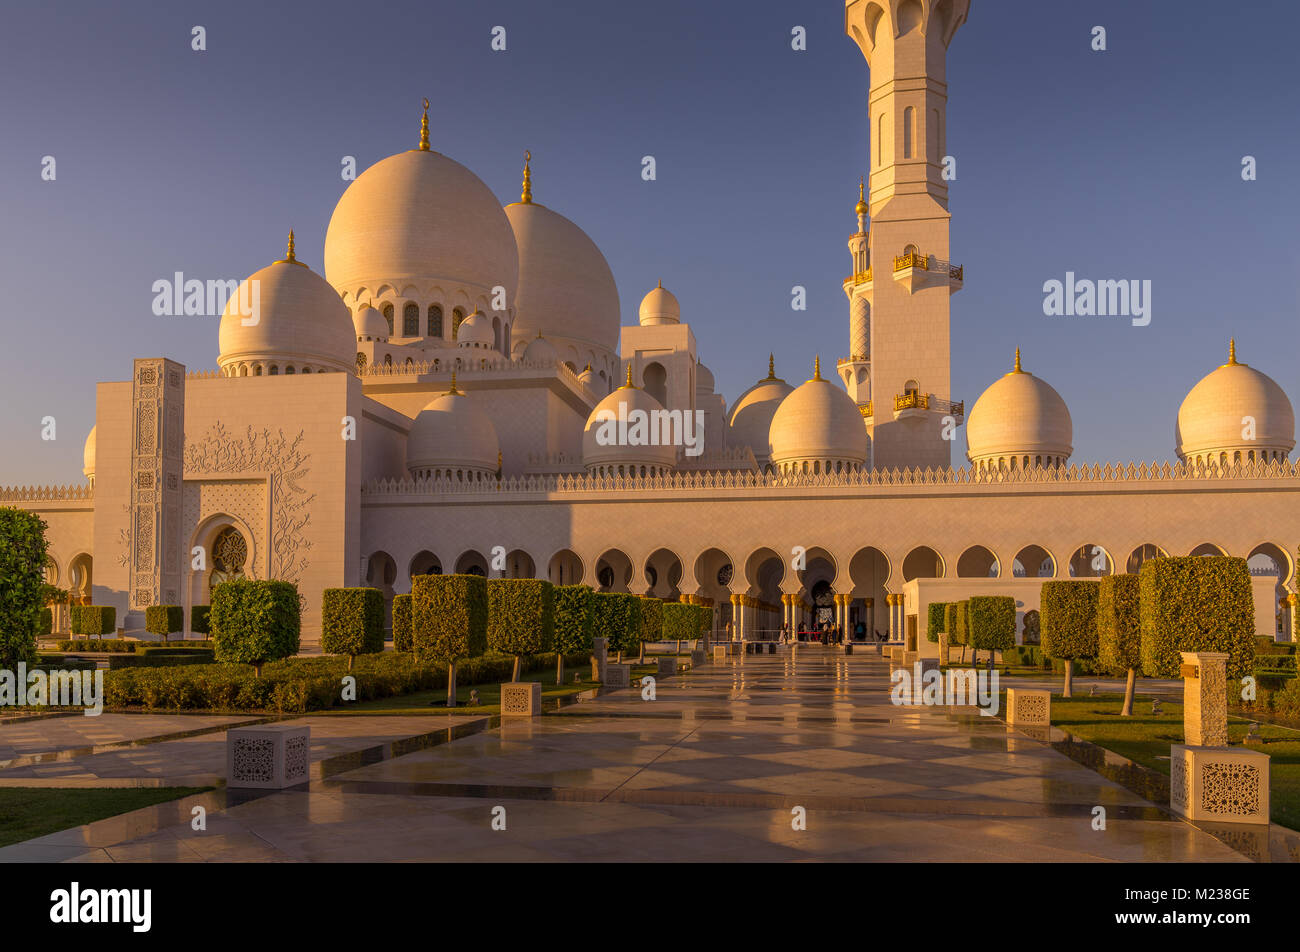 Muslim Worshippers Photos & Muslim Worshippers Images - Alamy